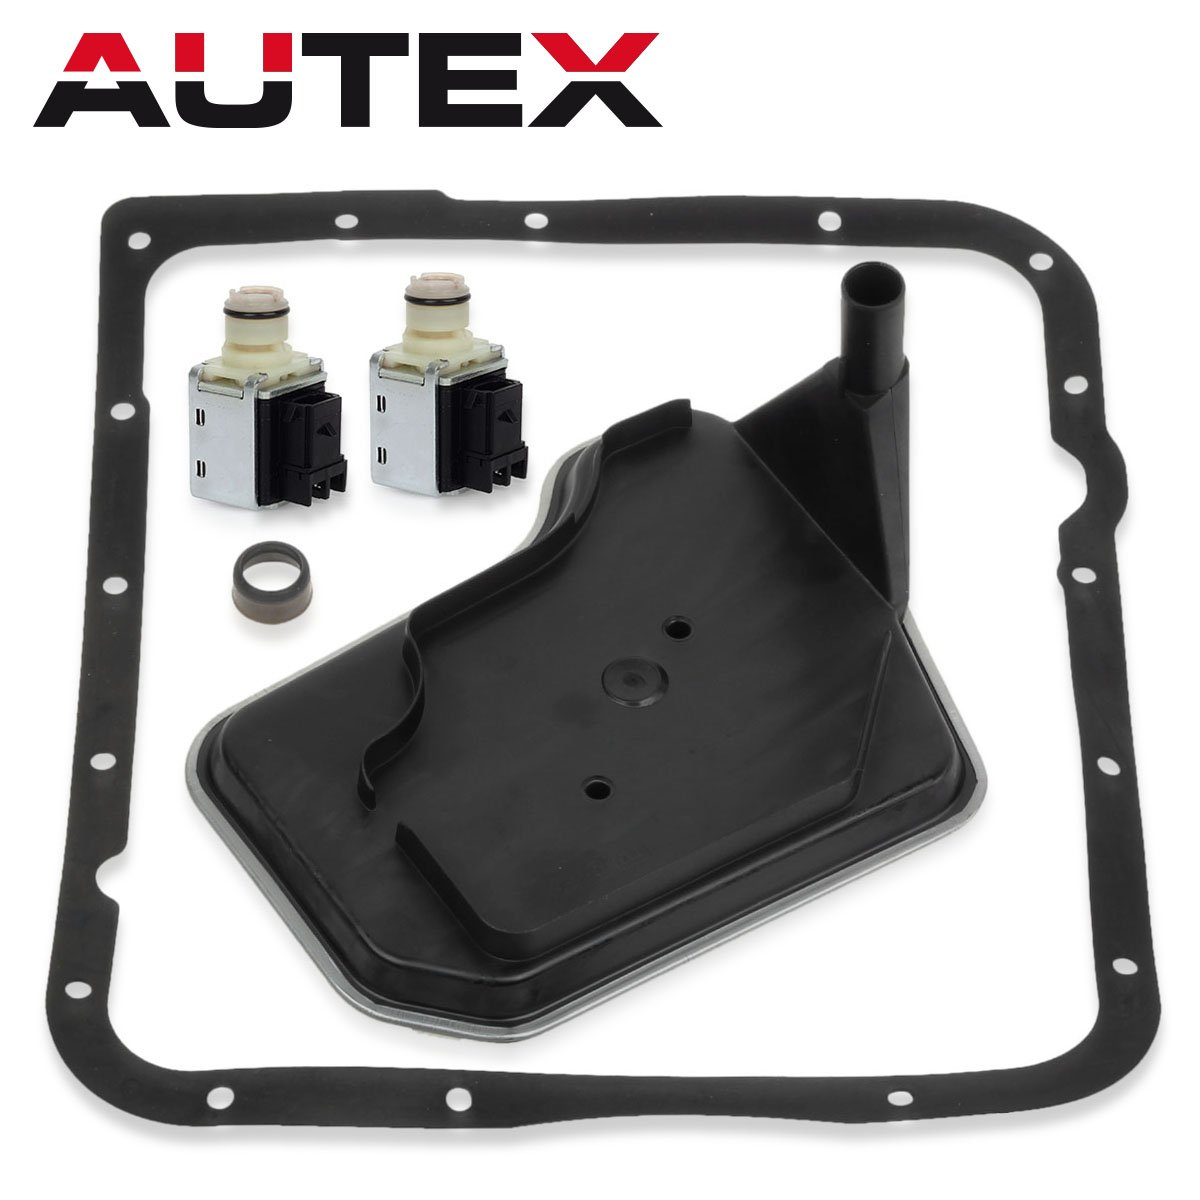 AUTEX 2PCS 4L60E Transmission Shift Solenoid Valve with Filter (DEEP PAN) Gasket Kit Set A&B replacement For Buick Rainier 04-07/Chevy Astro 04-07/Chevy Blazer 04-07/Chevy Cam 98-02